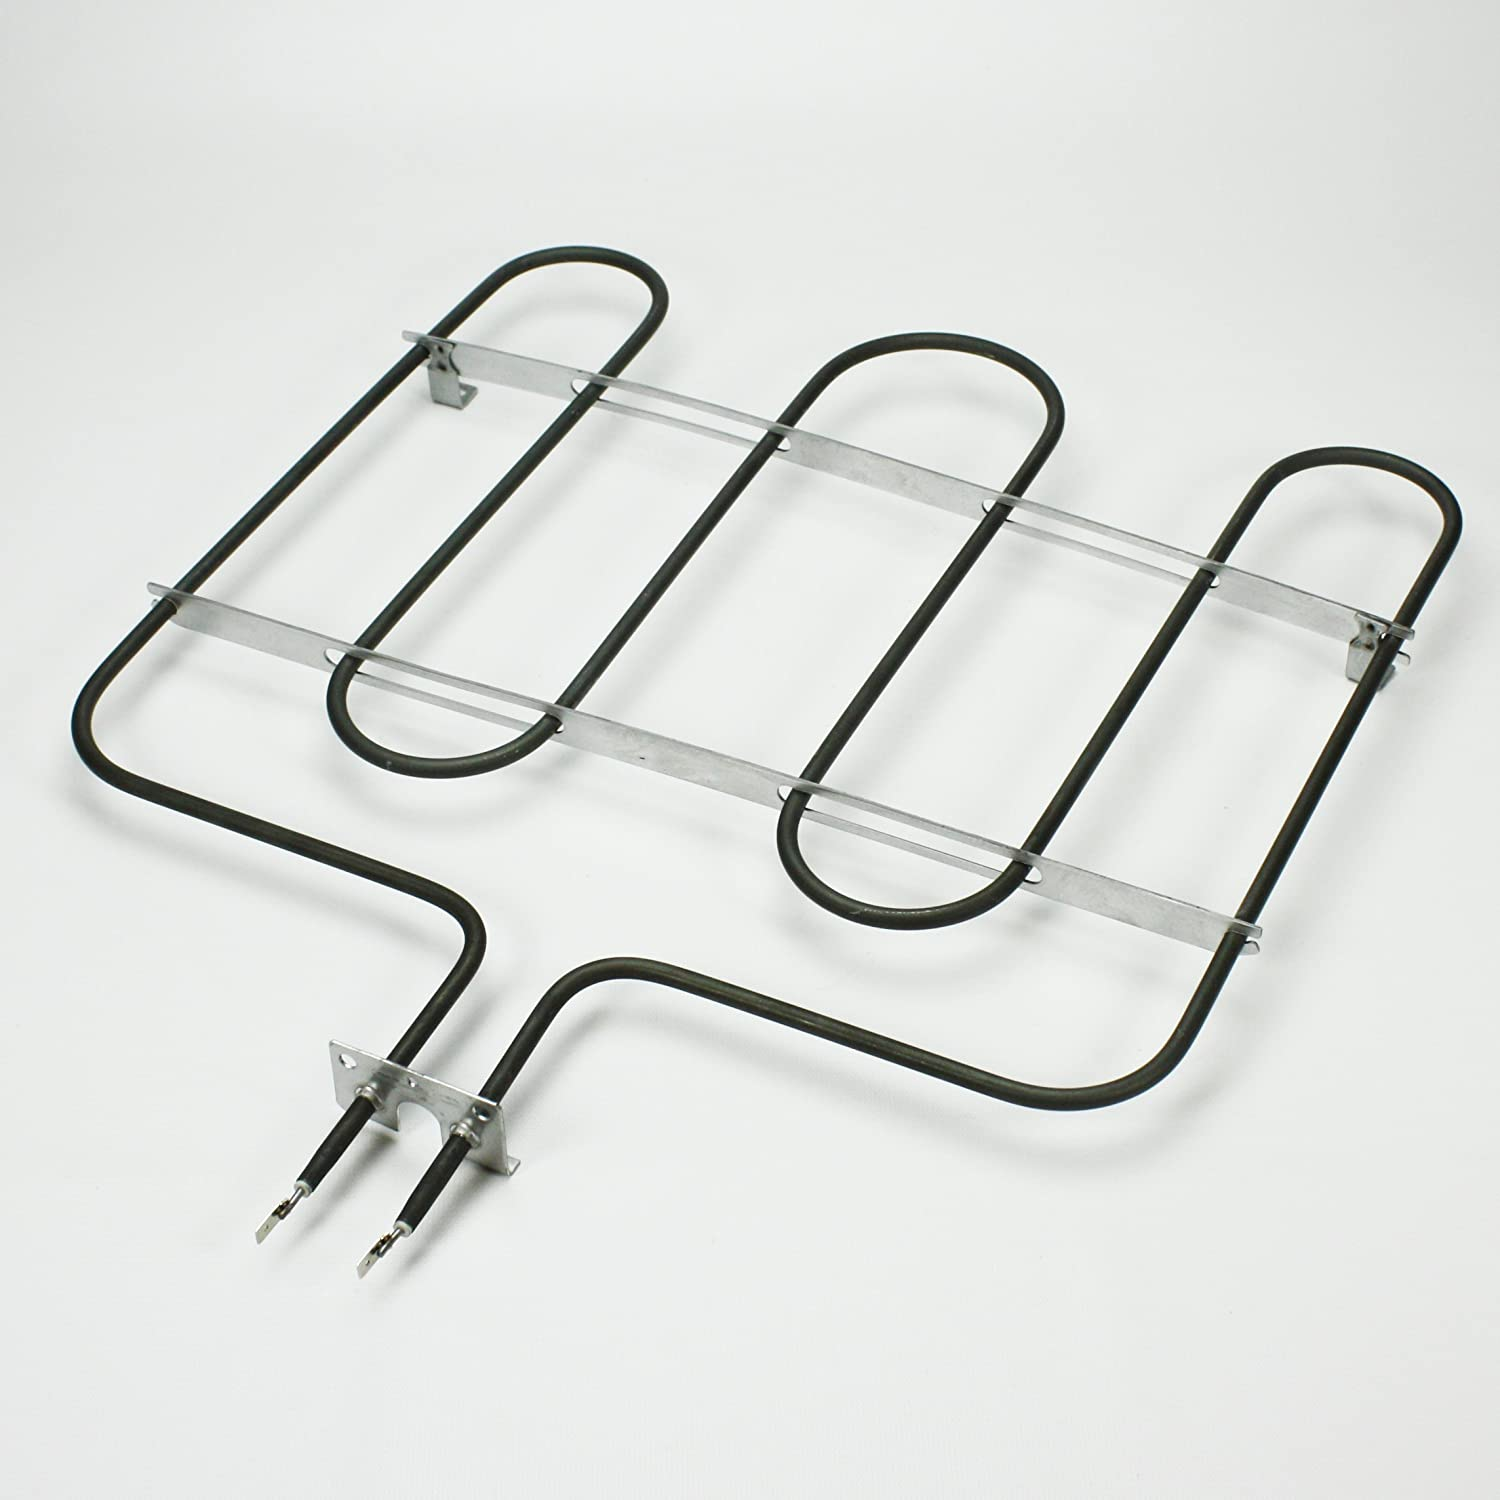 GE WB44T10094 Range/Stove/Oven Broil Element